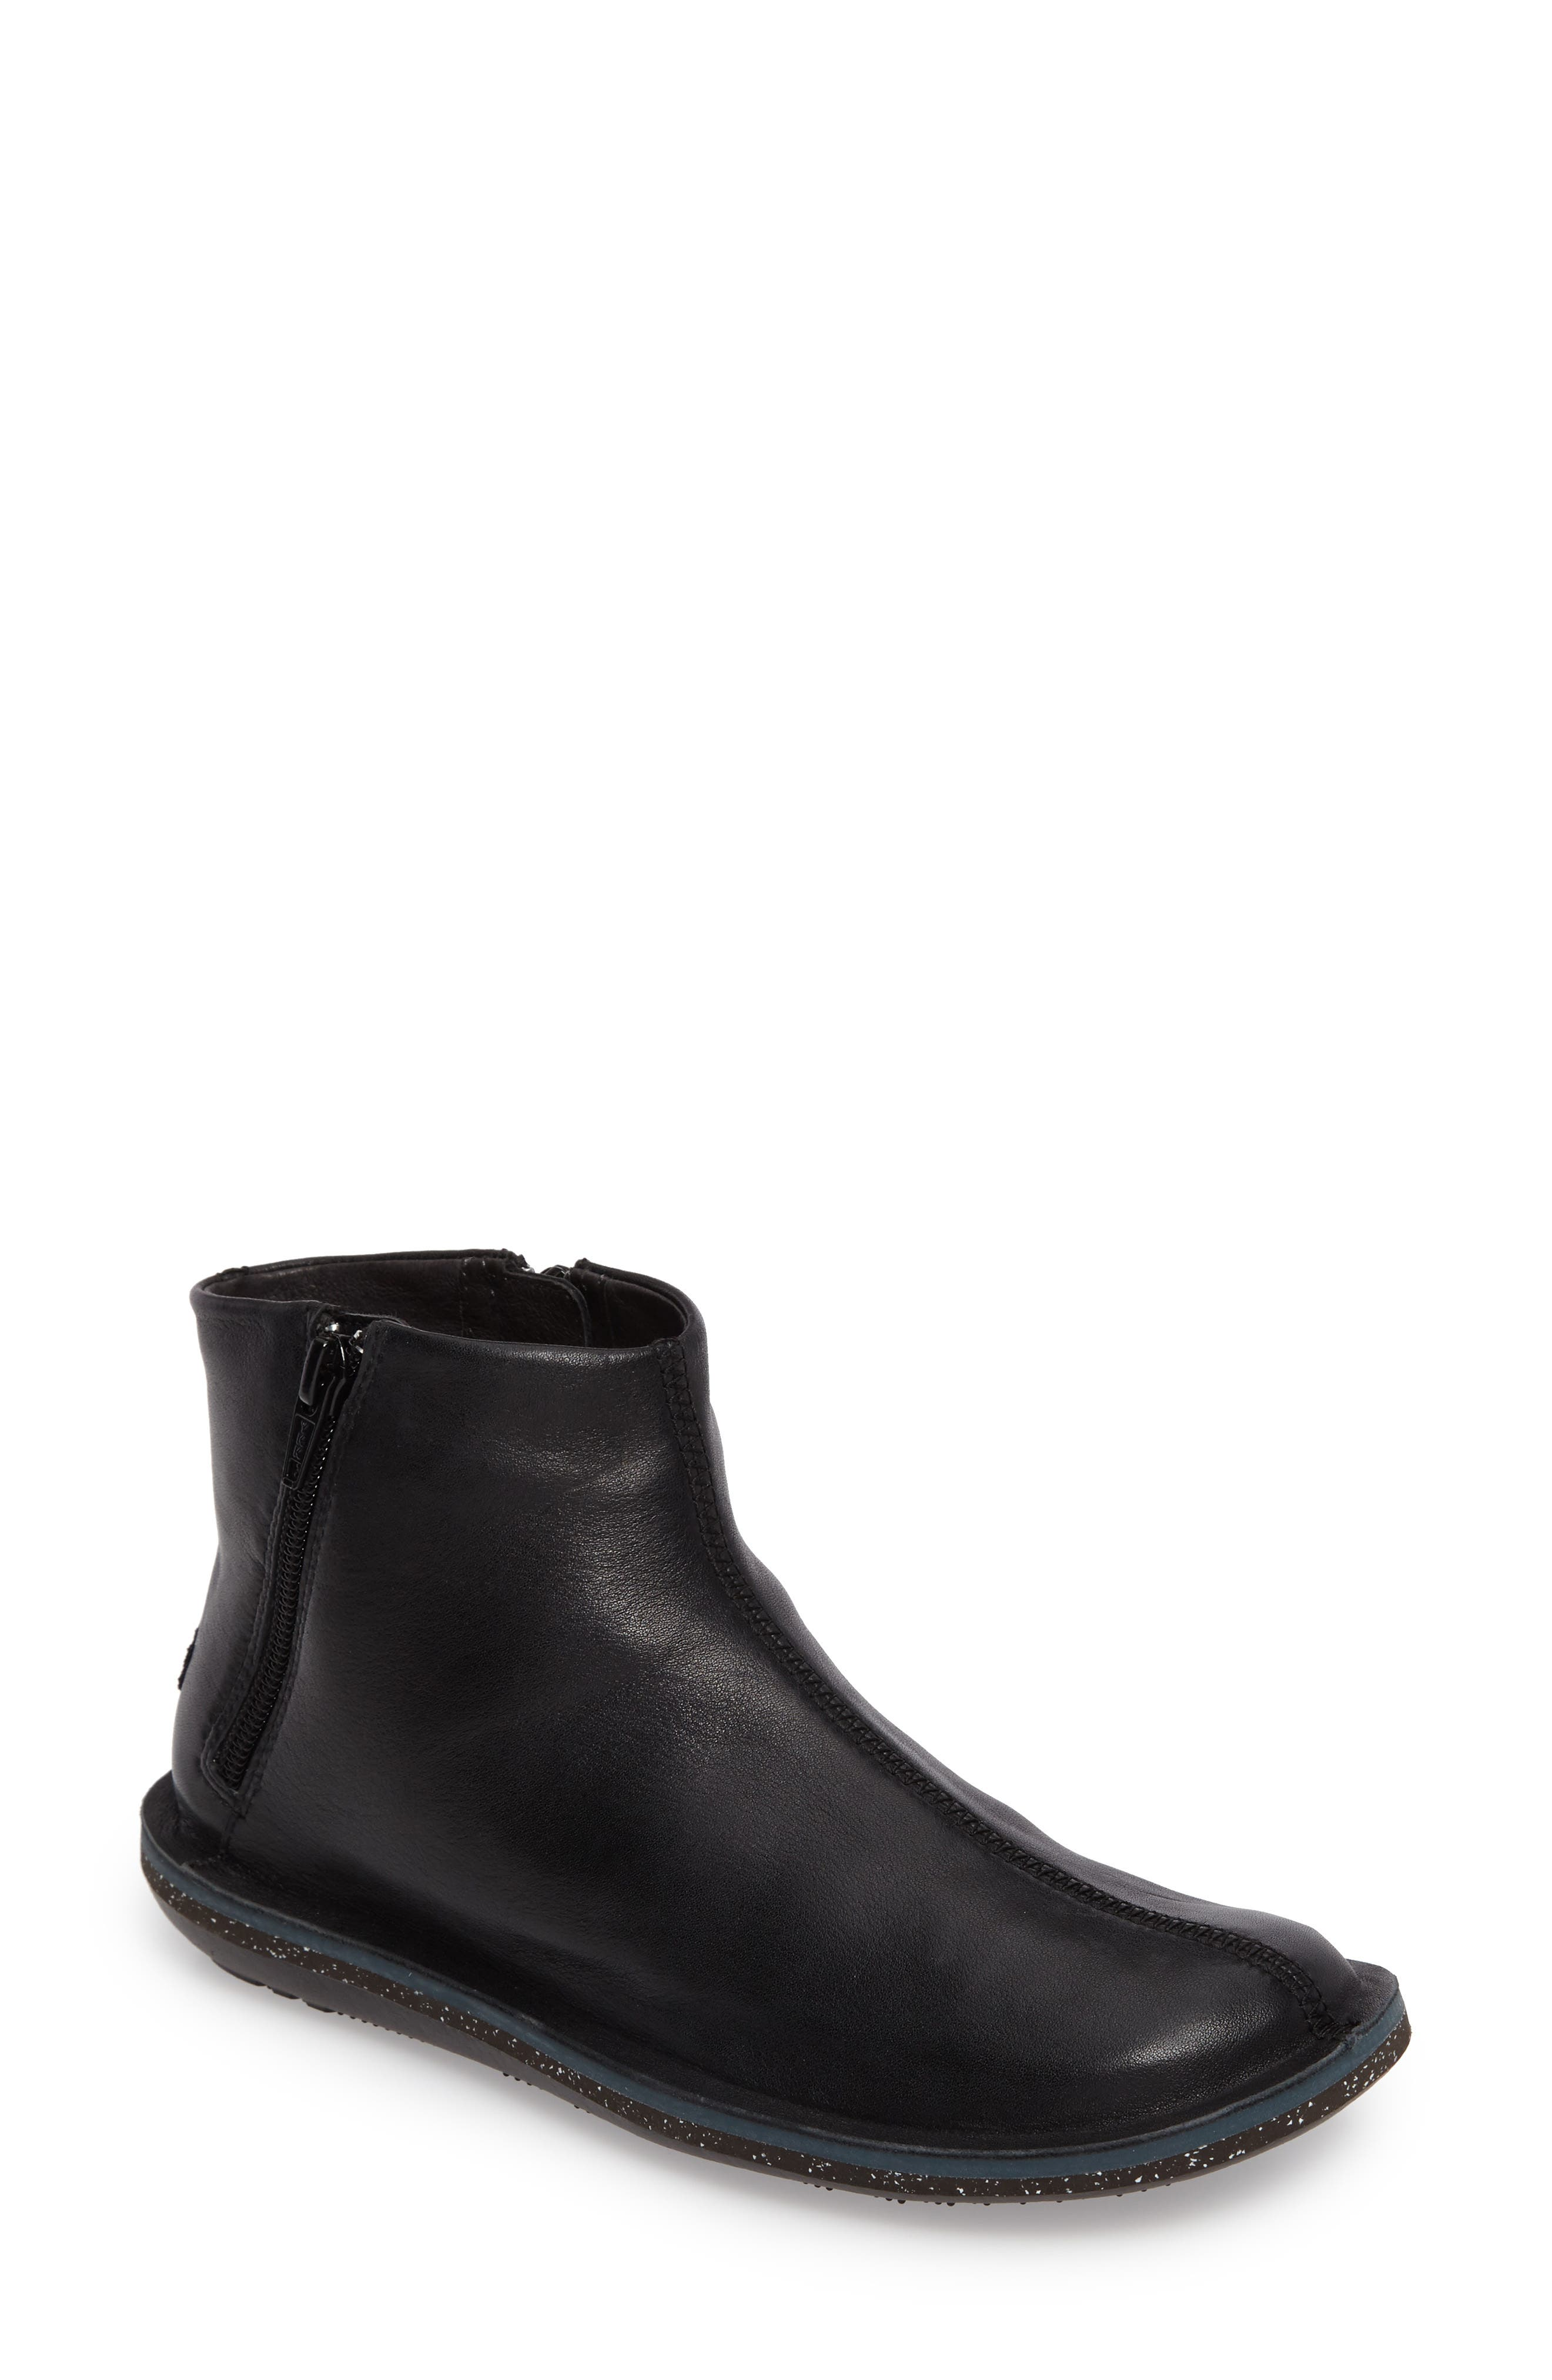 'Beetle' Ankle Bootie,                         Main,                         color, Black Leather